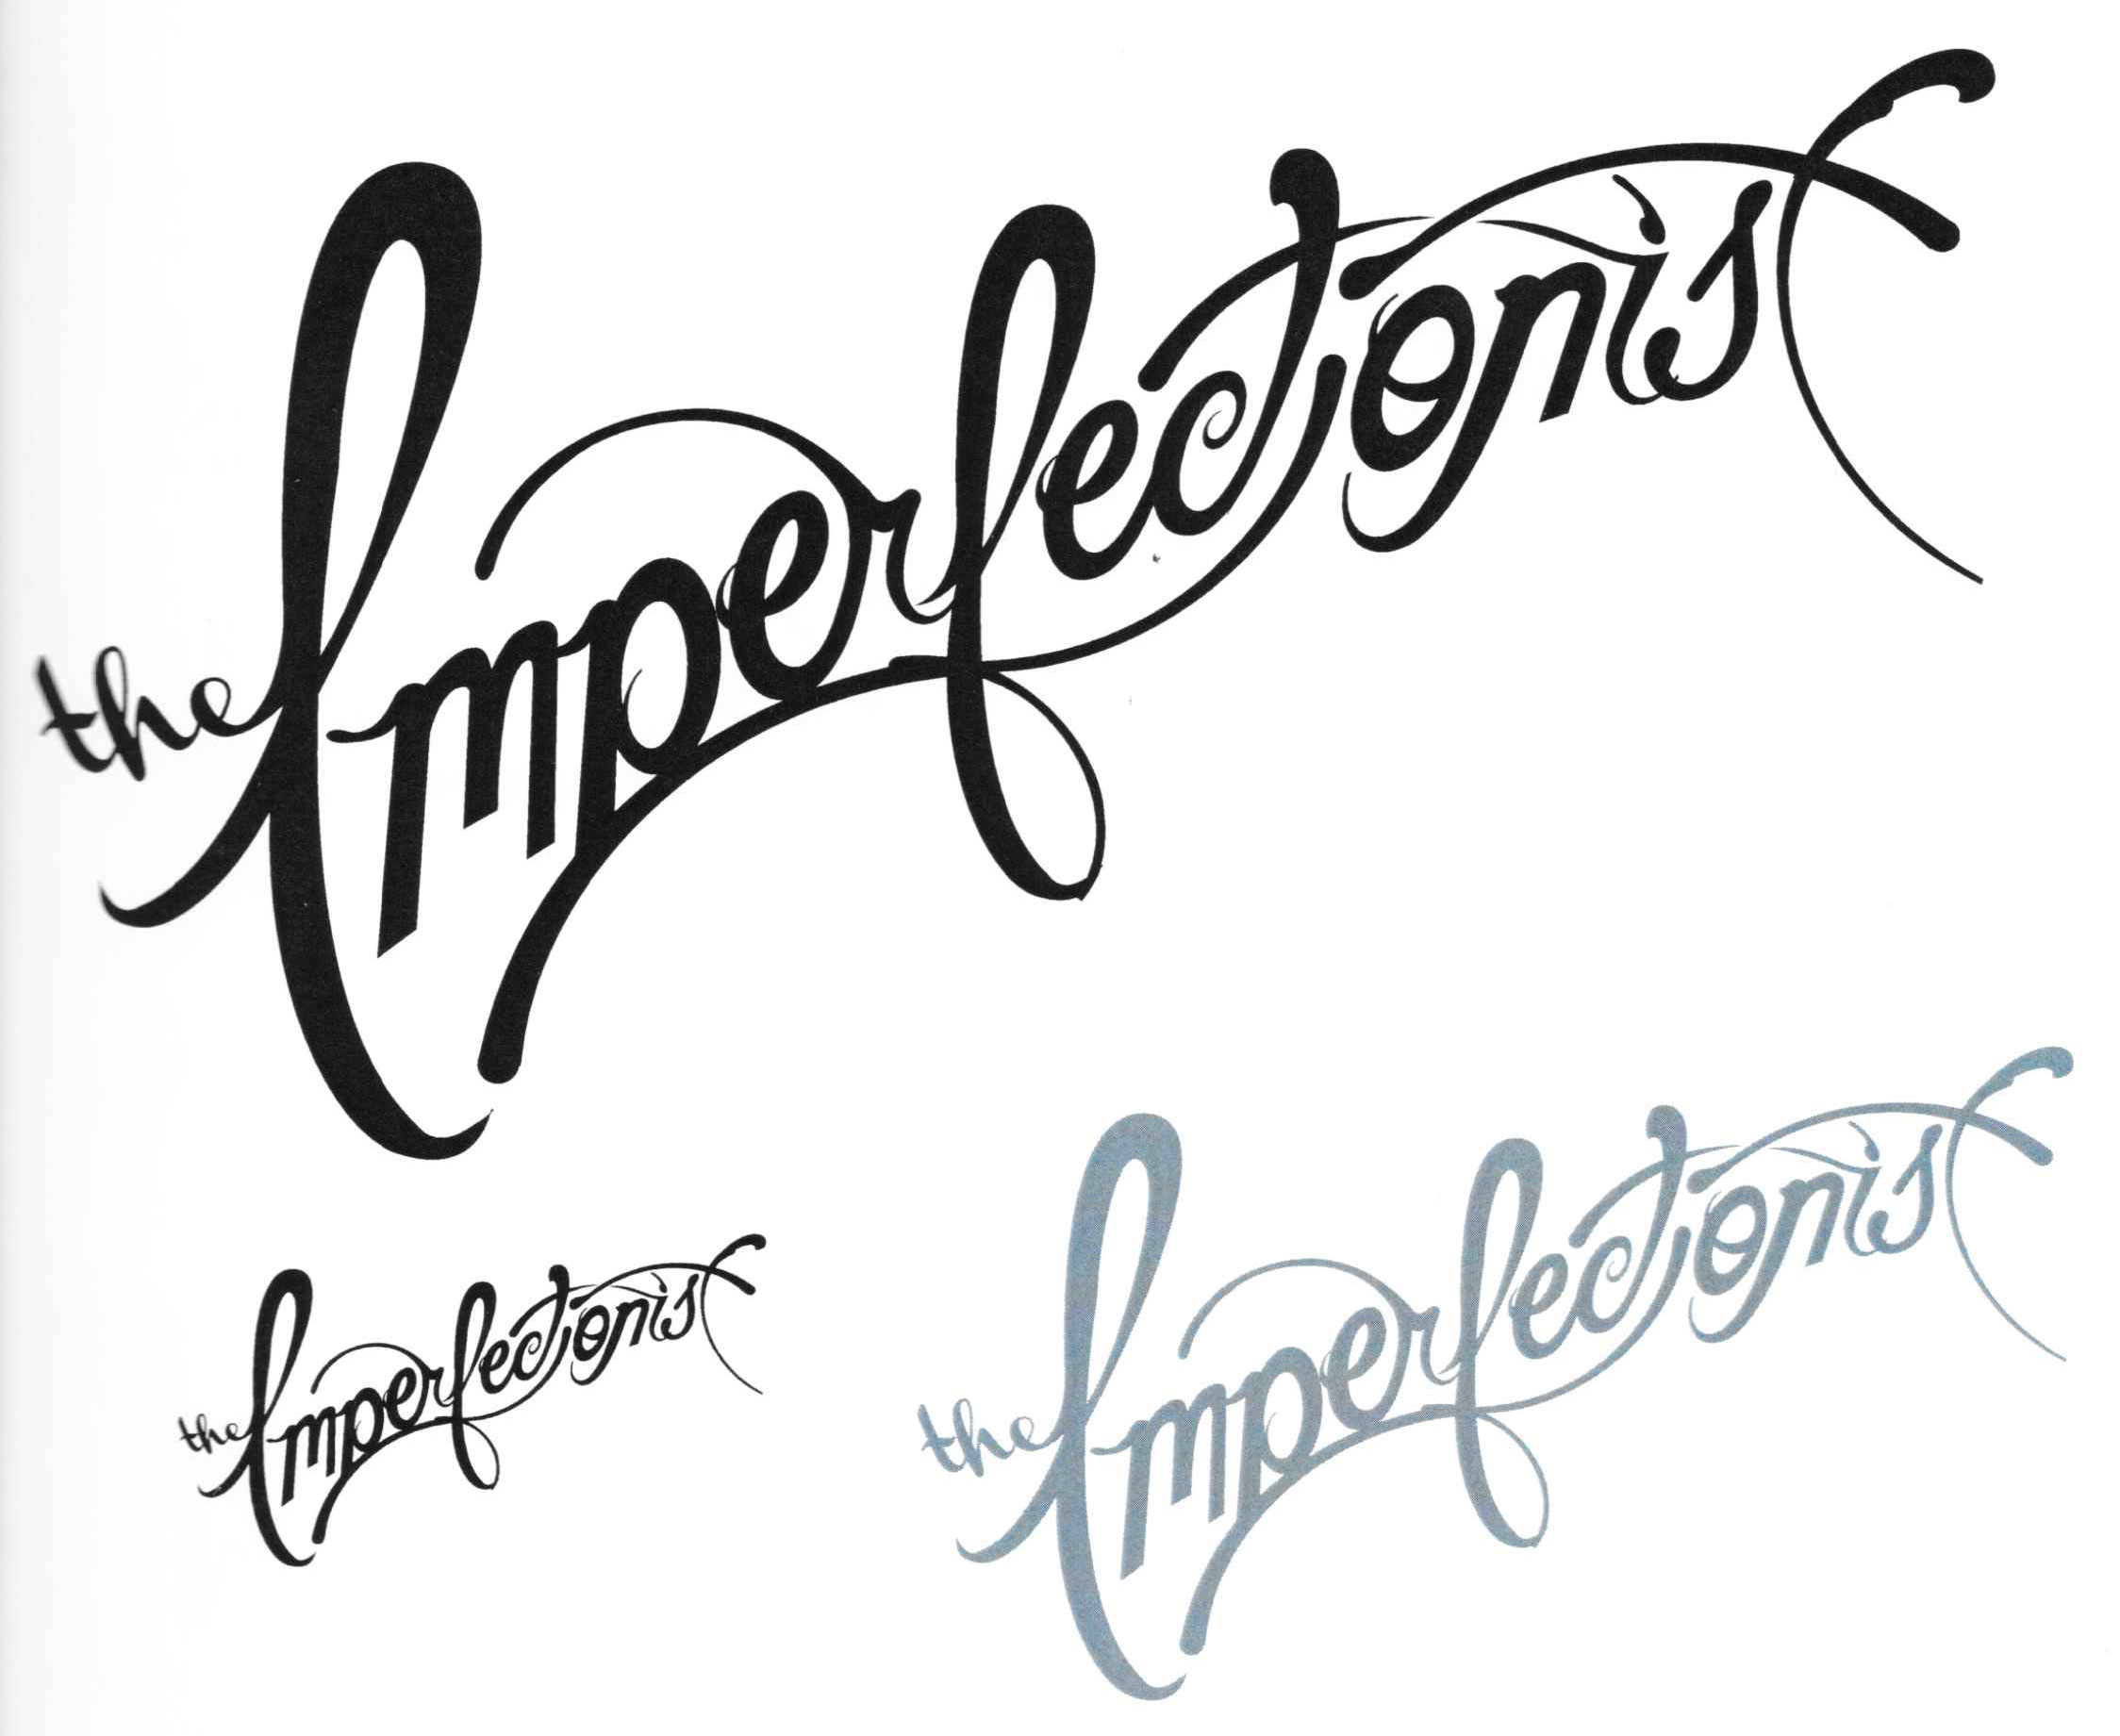 Three versions of an identity mark for a domain name I should not have purchased. The designer described this as chaotic and beautiful, where every letterform is interacting with another and no letter is exactly the same. I think it seems very French, very Art Nouveau, very chic.